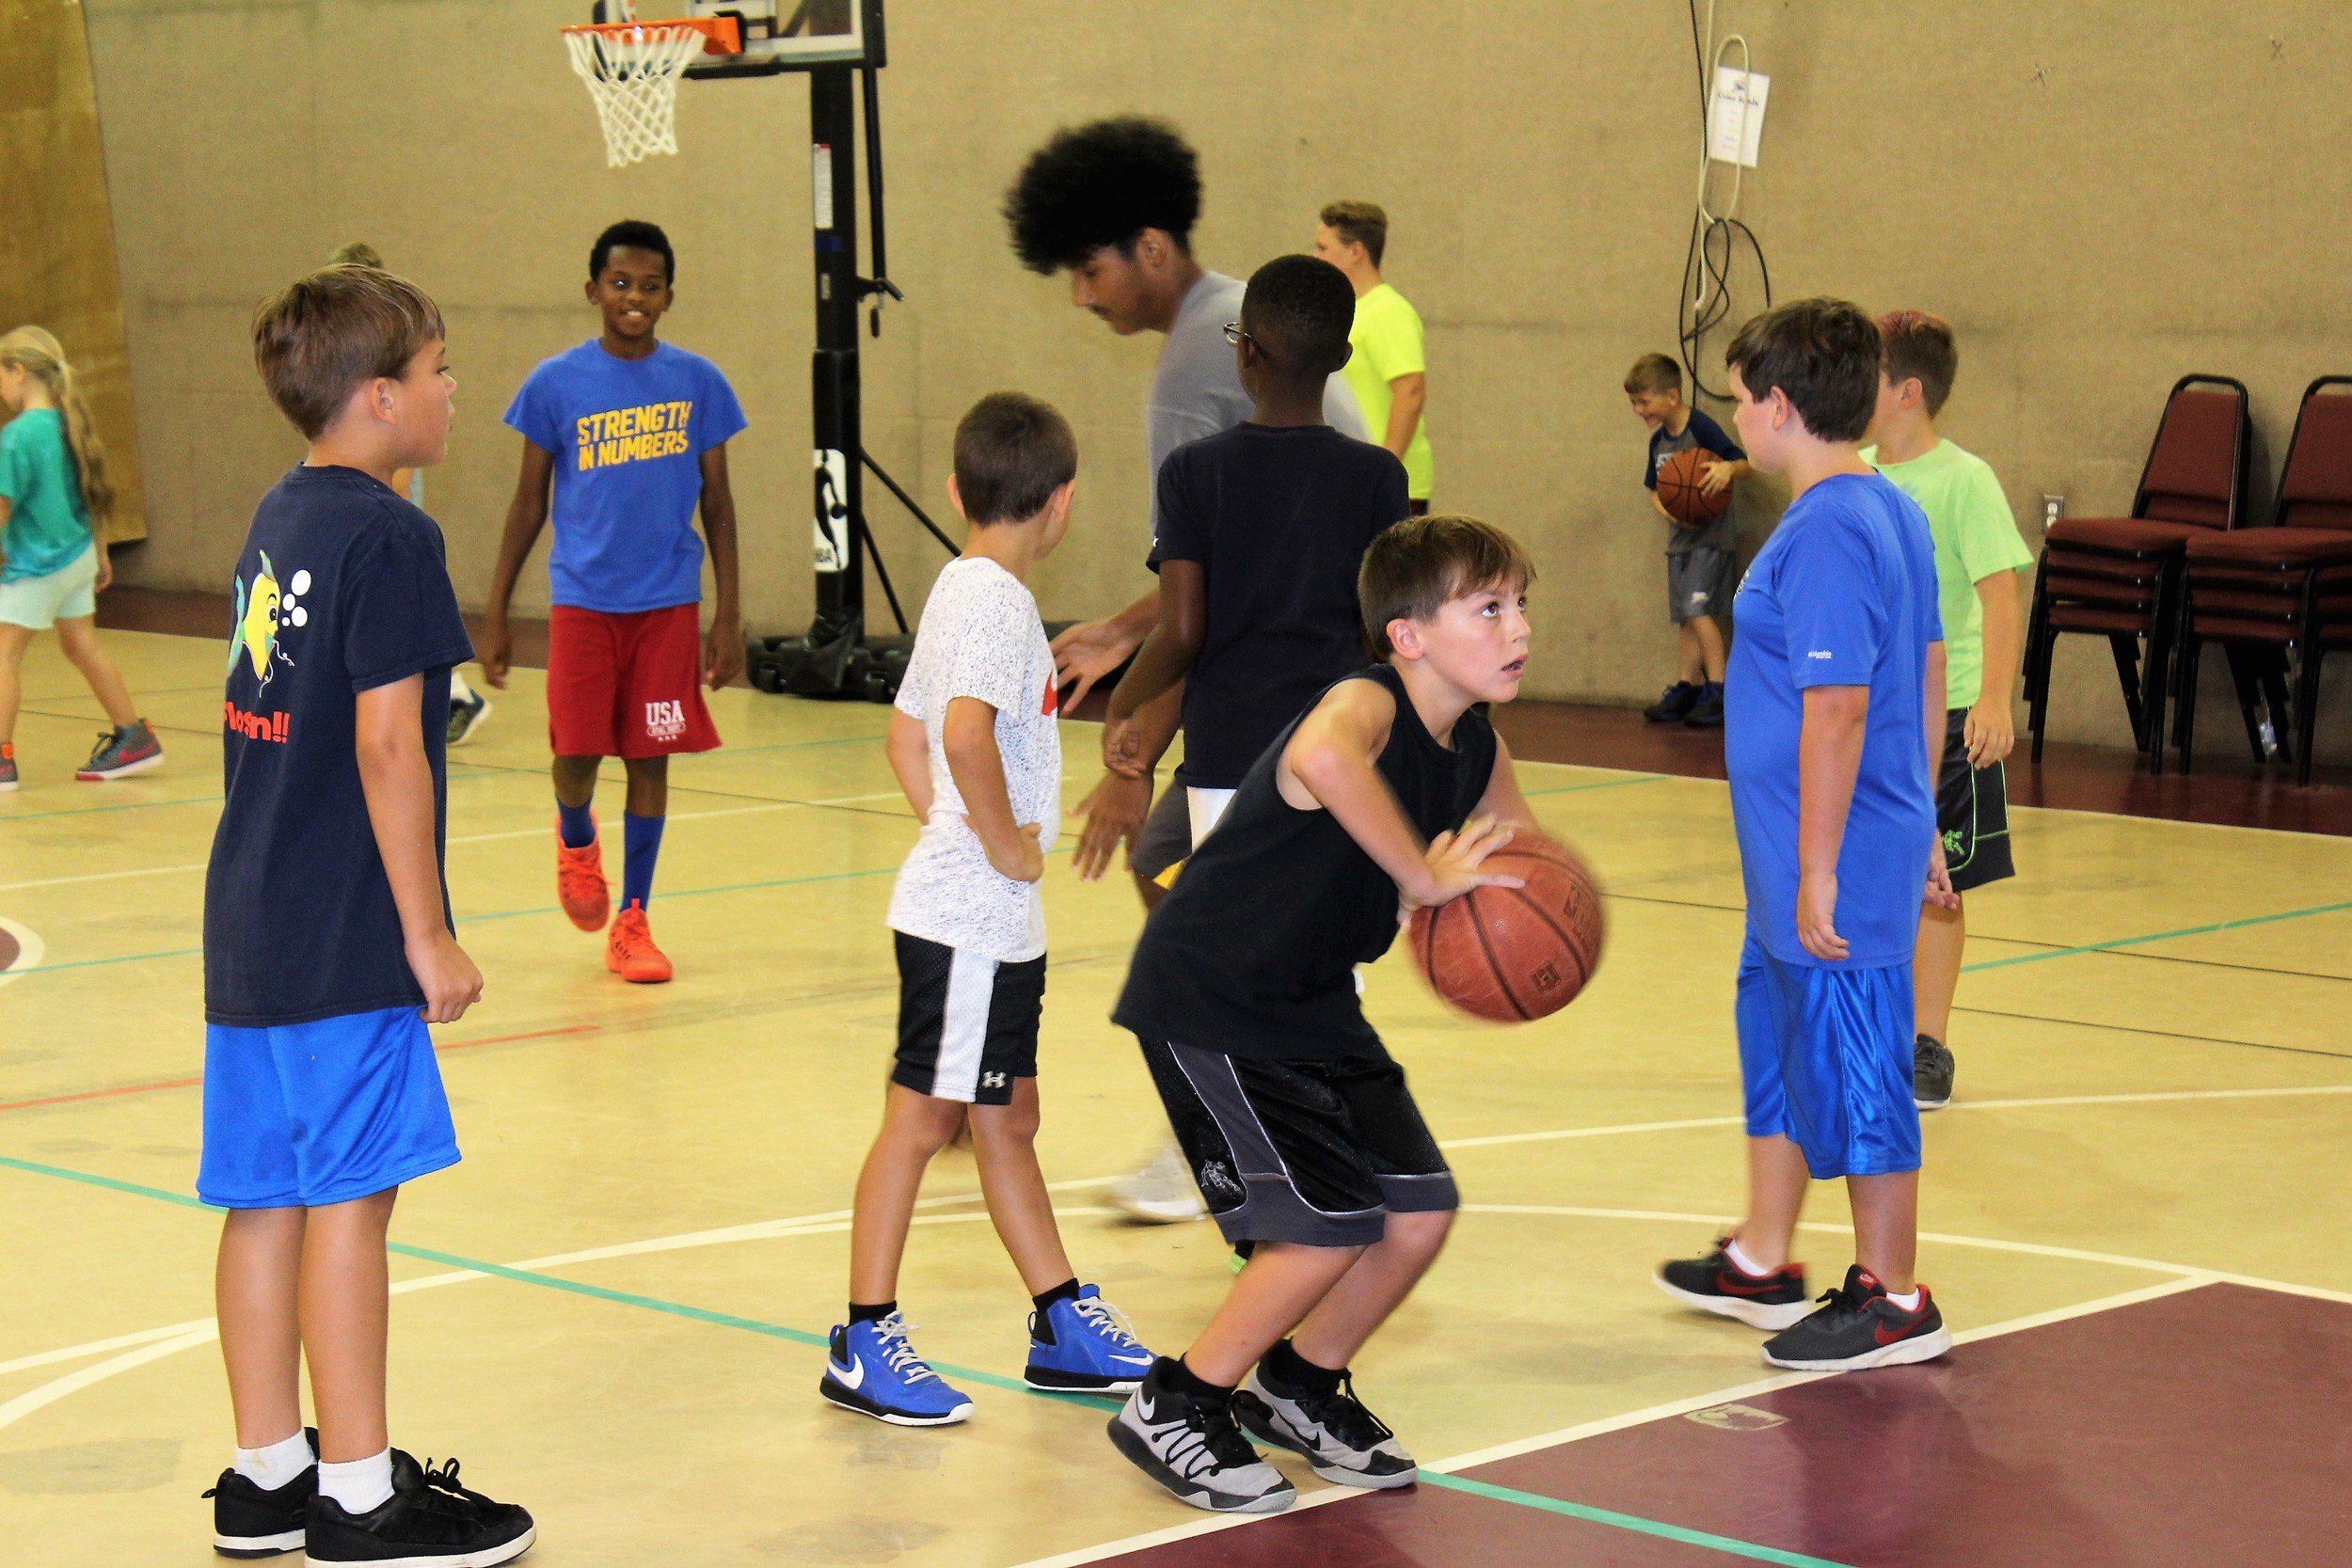 RHS Basketball Camp